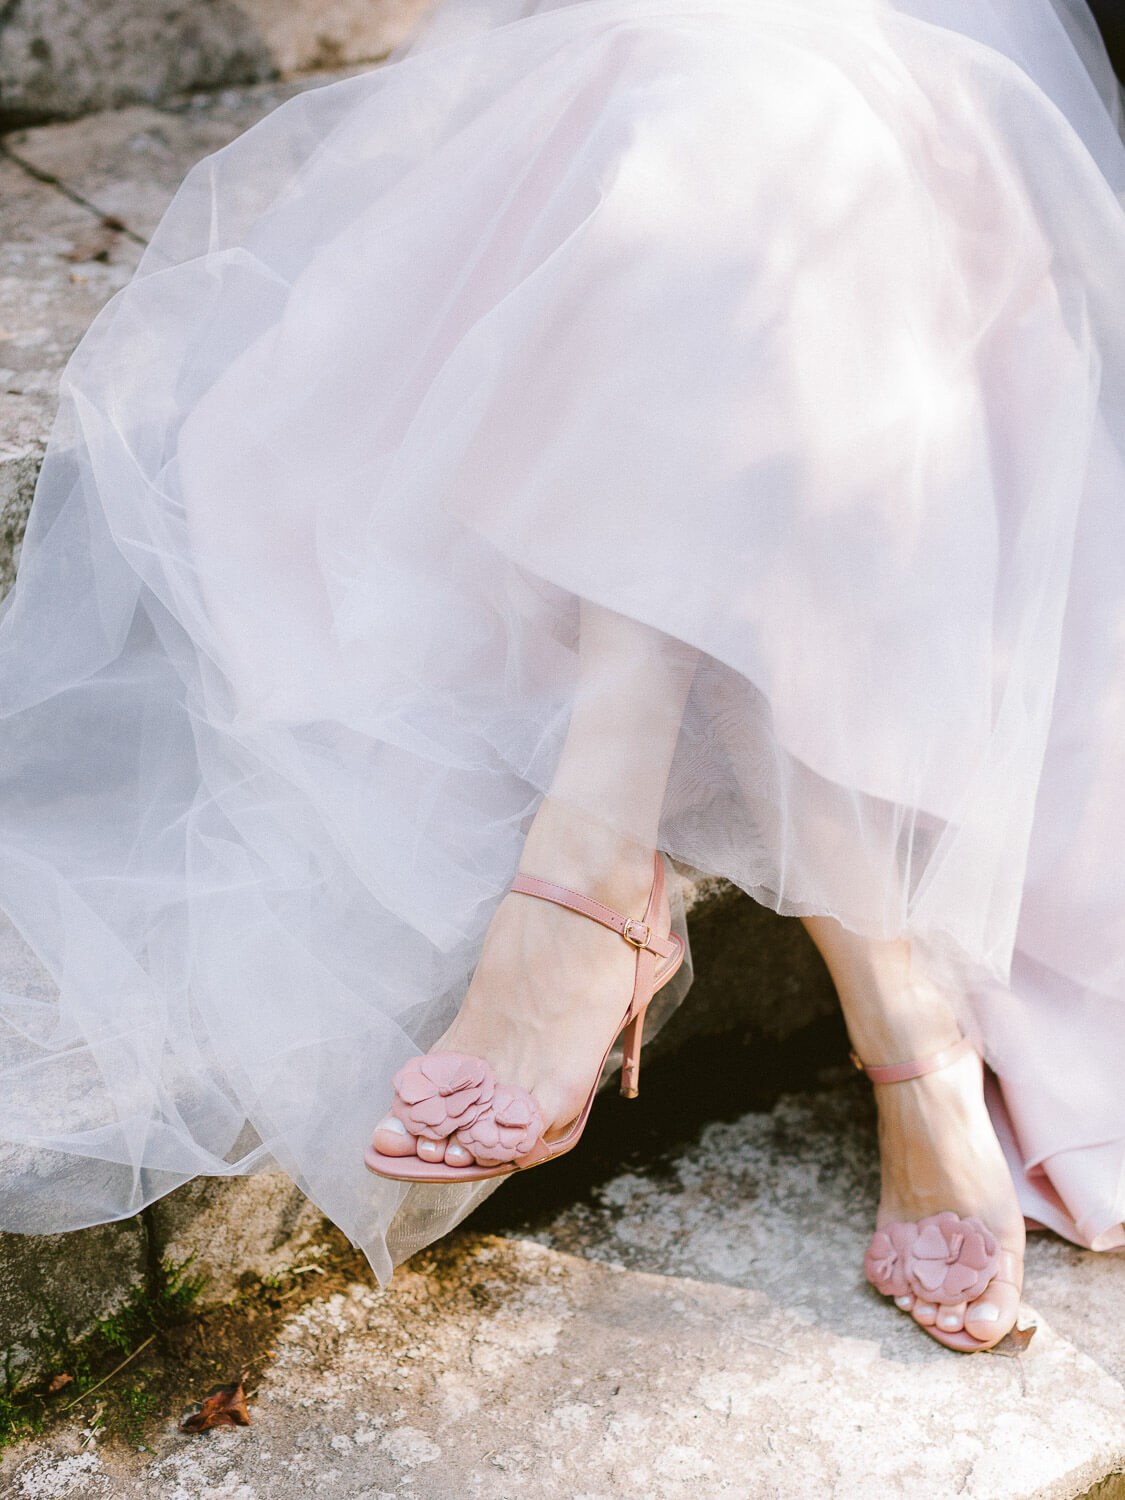 Detail of pink bridal shoes with floral details and bridal voluminous tule skirt by Portugal Wedding Photographer